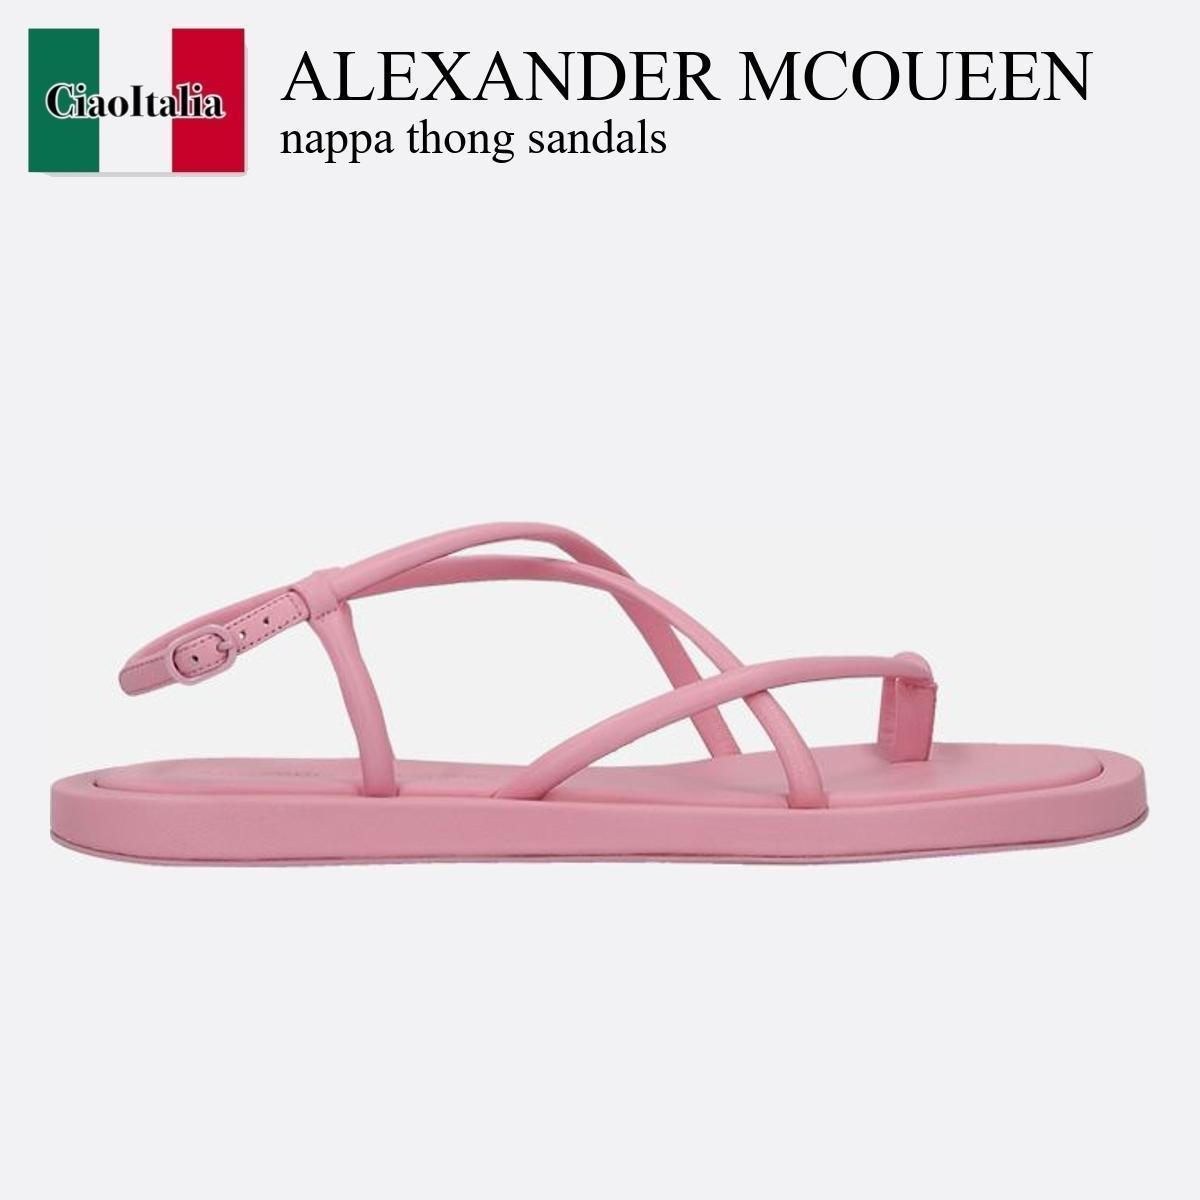 Alexander Mcqueen nappa thong sandals (alexander mcqueen/サンダル・ミュール) NAPPA THONG SANDALS  667373 WHW26  667373 WHW26 5483